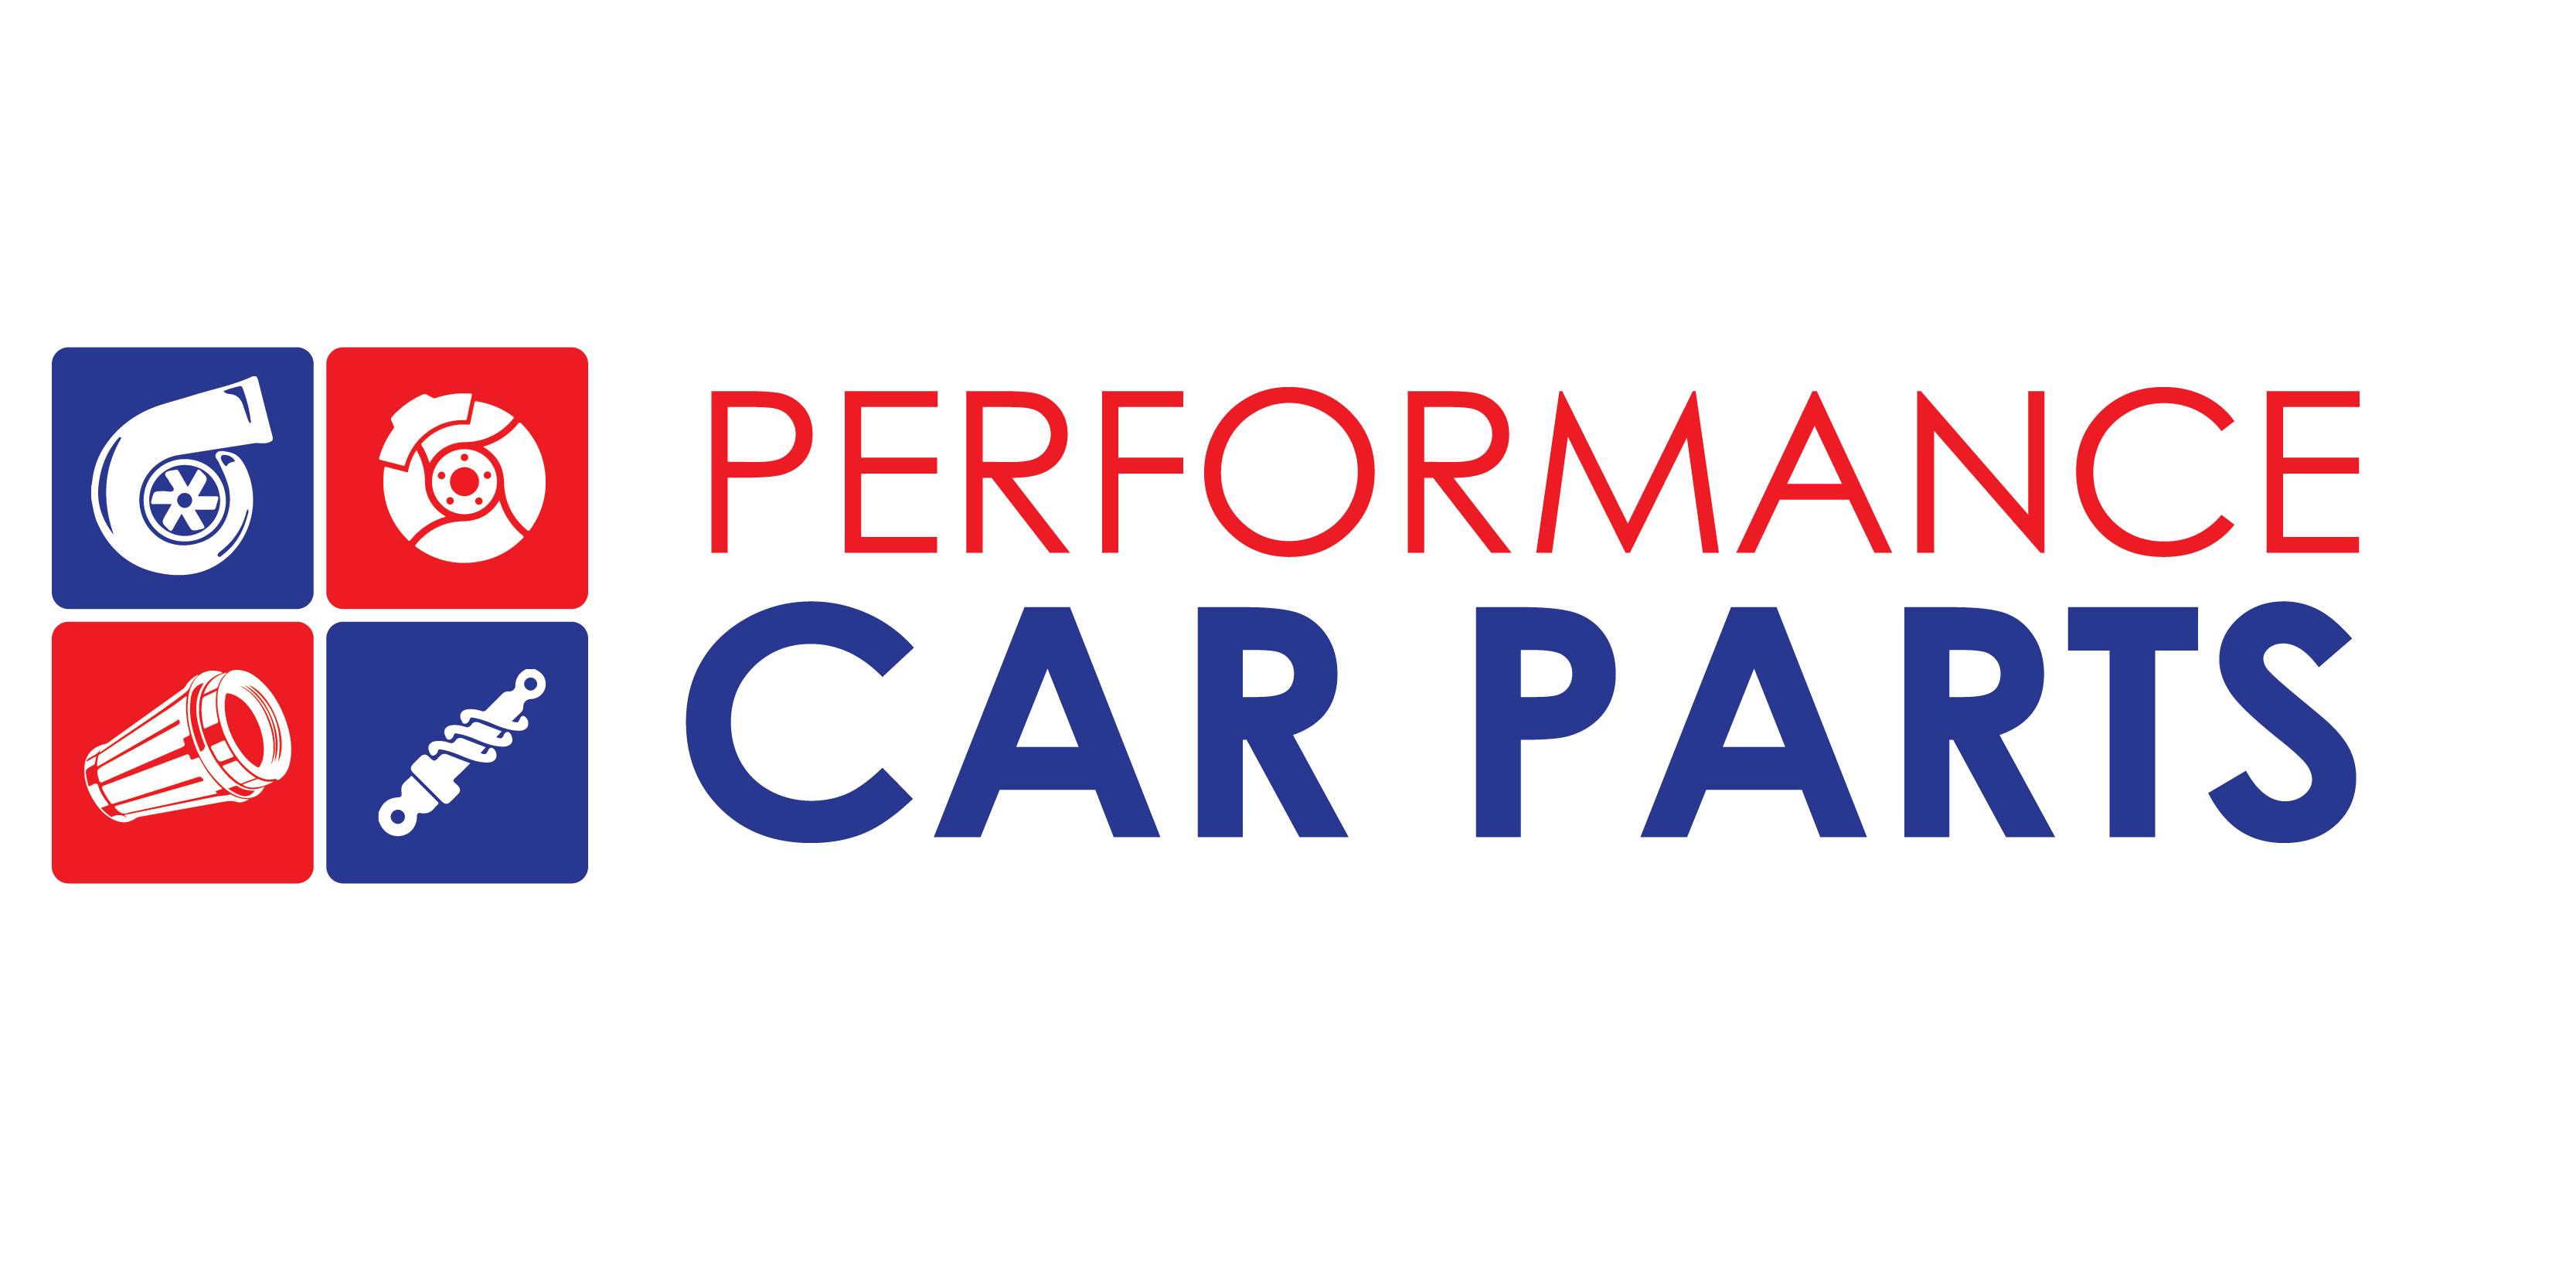 Performance Car Parts